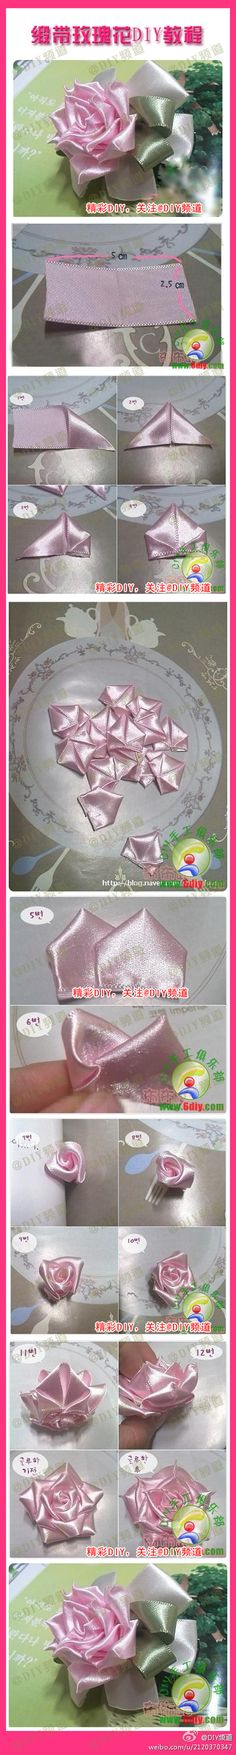 Pretty Ribbon Rose Pictorial from Duitang.  In Chinese (I think)  but the pictures are the DIY.【缎带玫瑰花DIY教程】非常漂亮的缎带玫瑰花,学习一下吧~~~